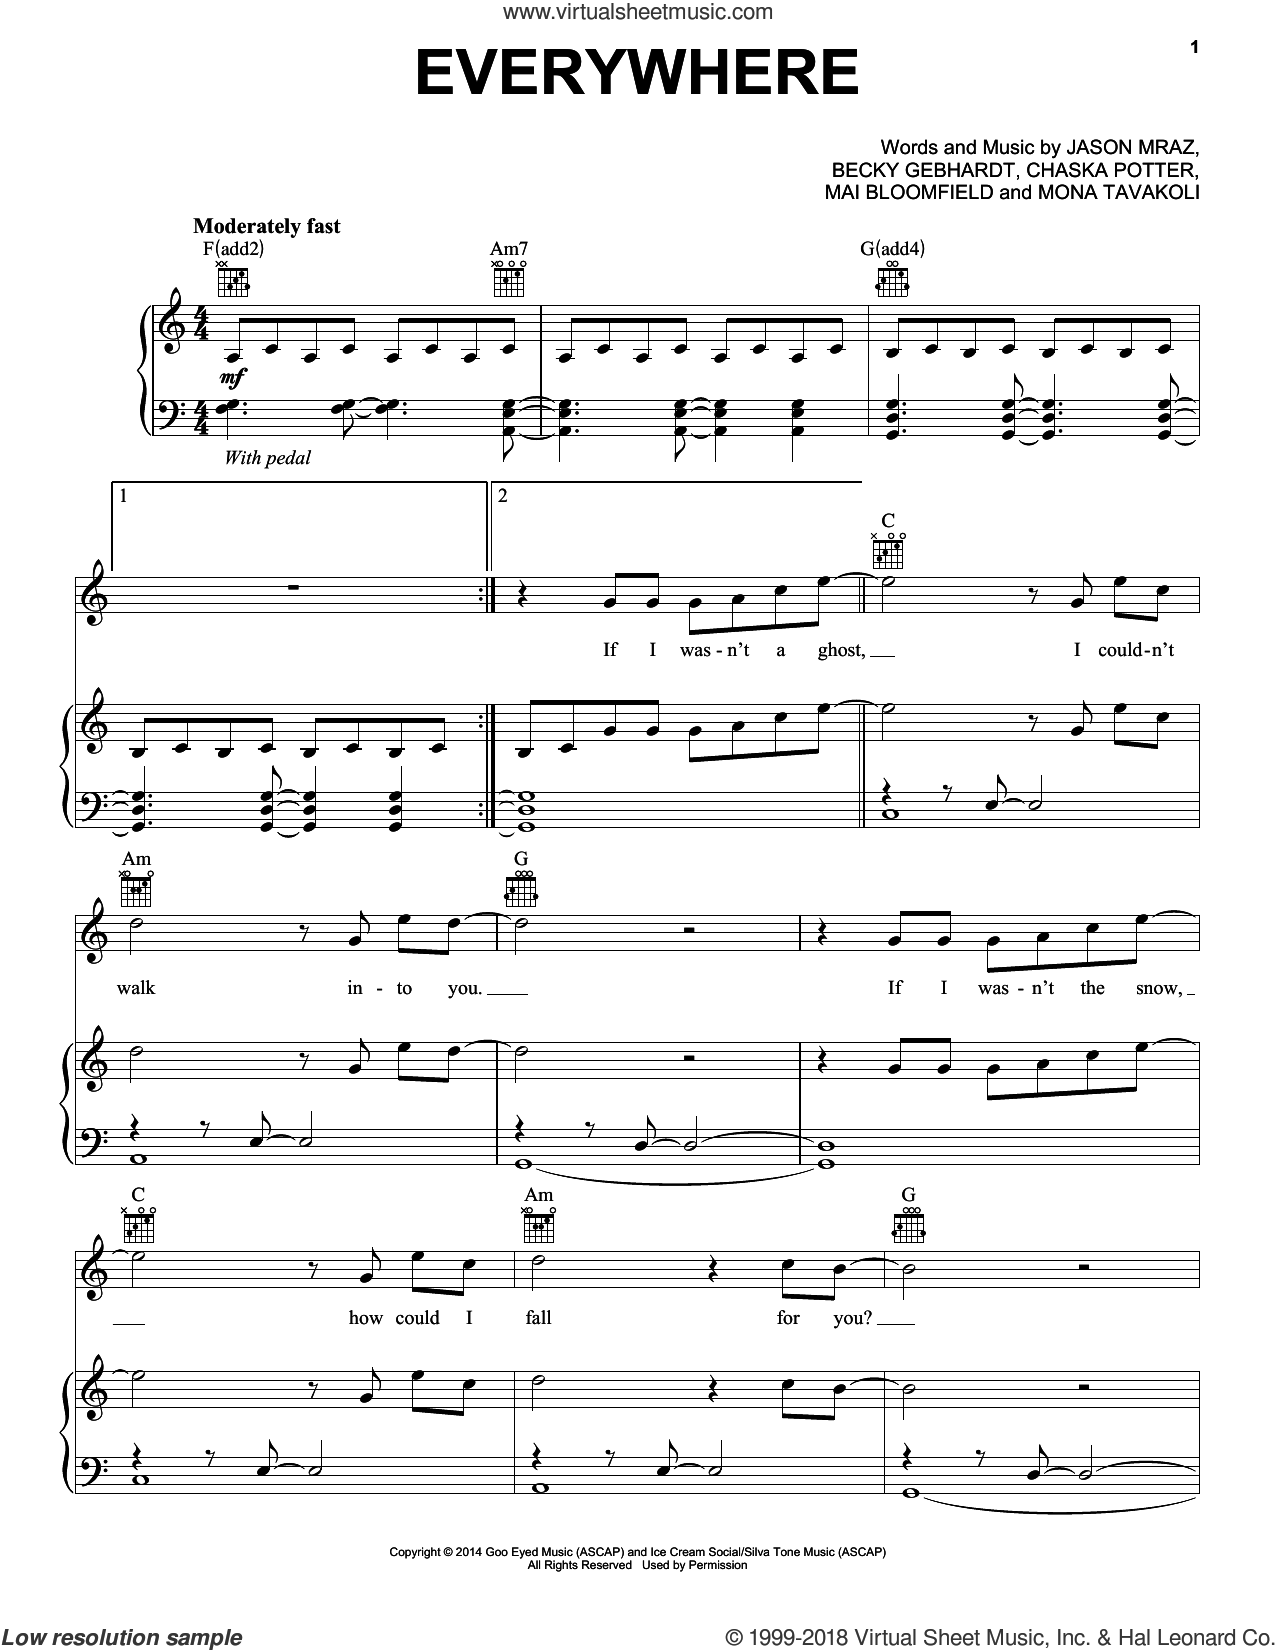 Everywhere sheet music for voice, piano or guitar by Jason Mraz, Becky Gebhardt, Chaska Potter, Mai Bloomfield and Mona Tavakoli, intermediate